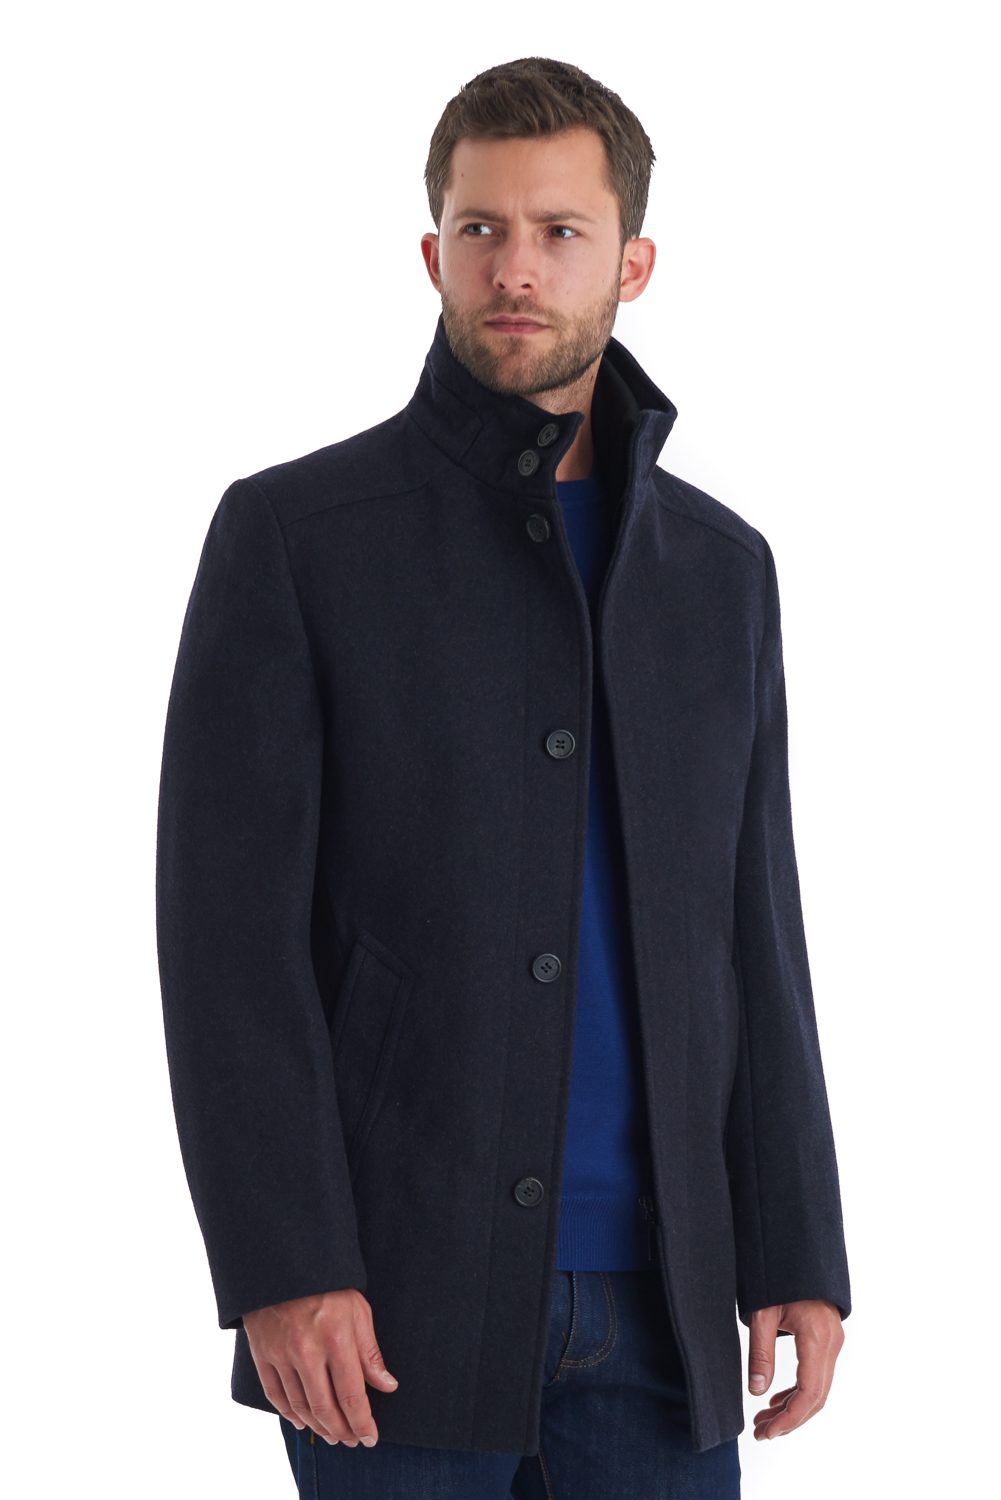 Men's Single Breasted Jackets Tailored for the trendy gent our single breasted jackets have one column of buttons and a narrow overlap of fabric, unlike the double breasted jacket. Perfectly pair with casual pants such as chinos or jeans for a smart casual look.